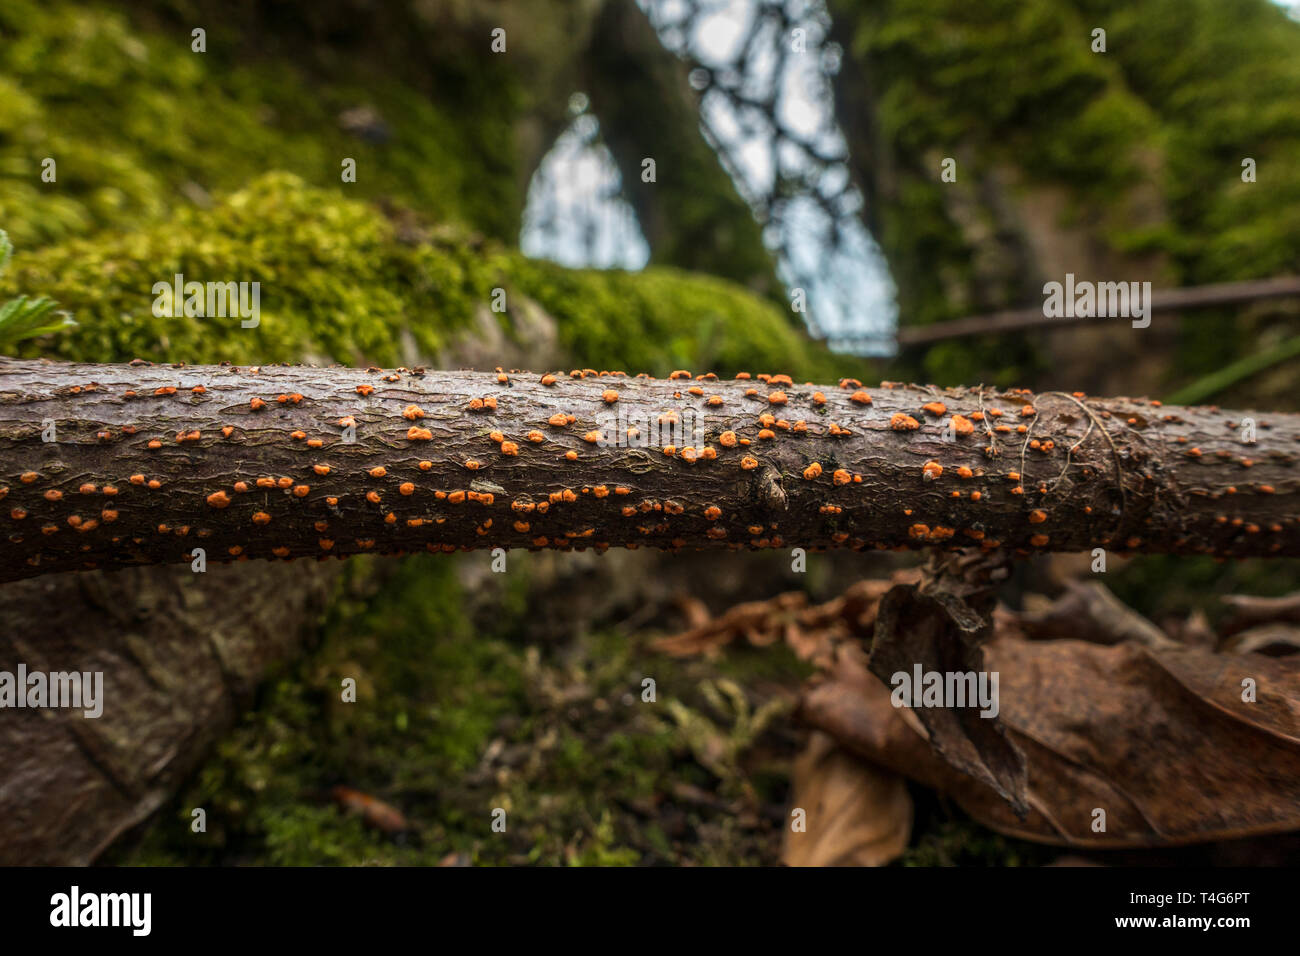 Coral spot fungus, Nectria cinnabarina, on a stick on the forest floor, UK - Stock Image